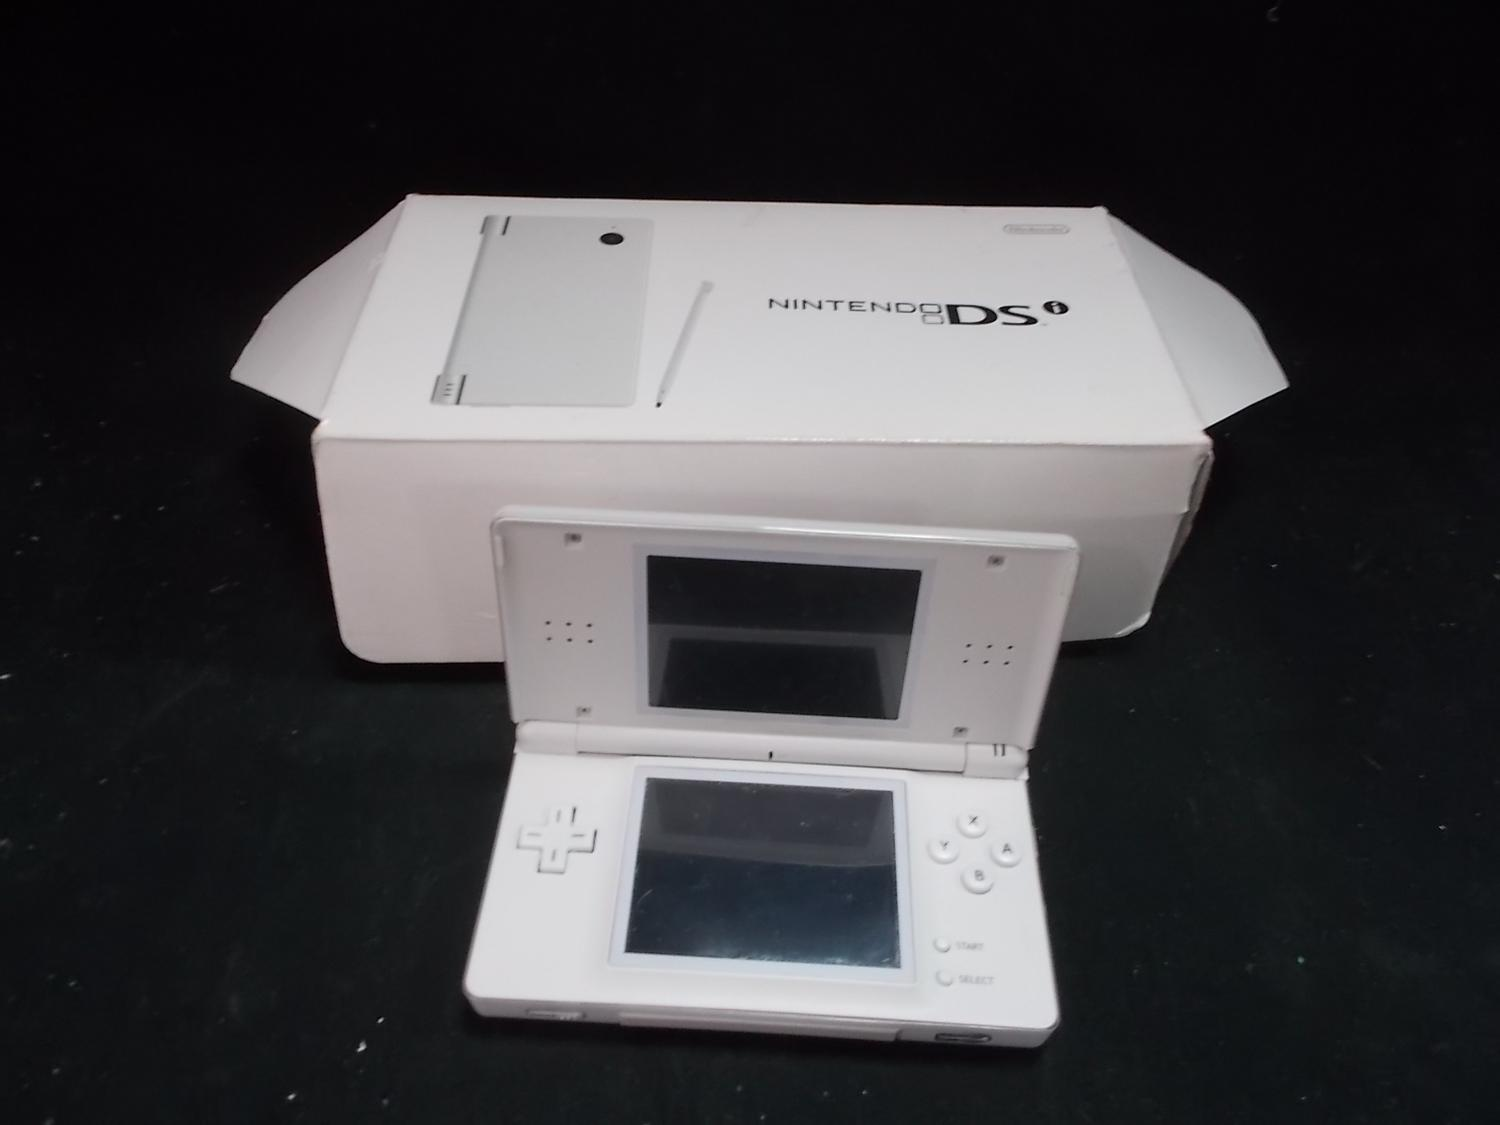 Nintendo DS lite hand held console.  image